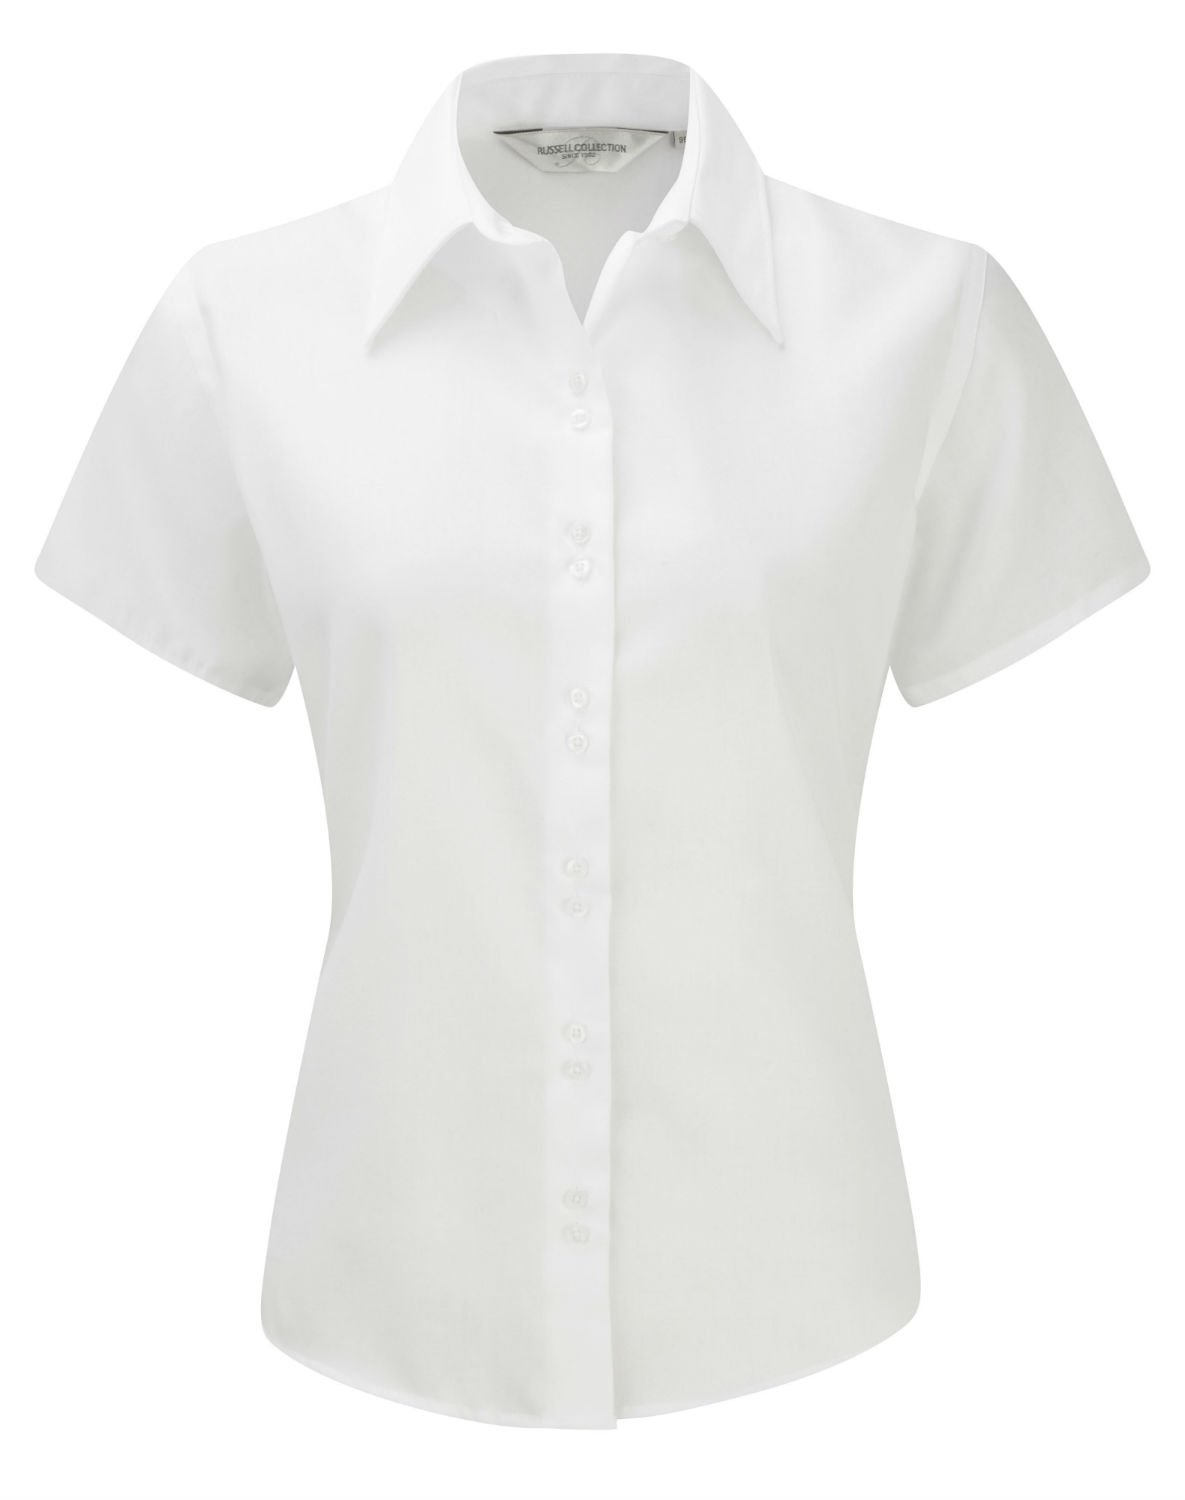 Russell Ladies Short Sleeve Shirt Blus'Ultimate bügelfrei: Amazon.de:  Bekleidung